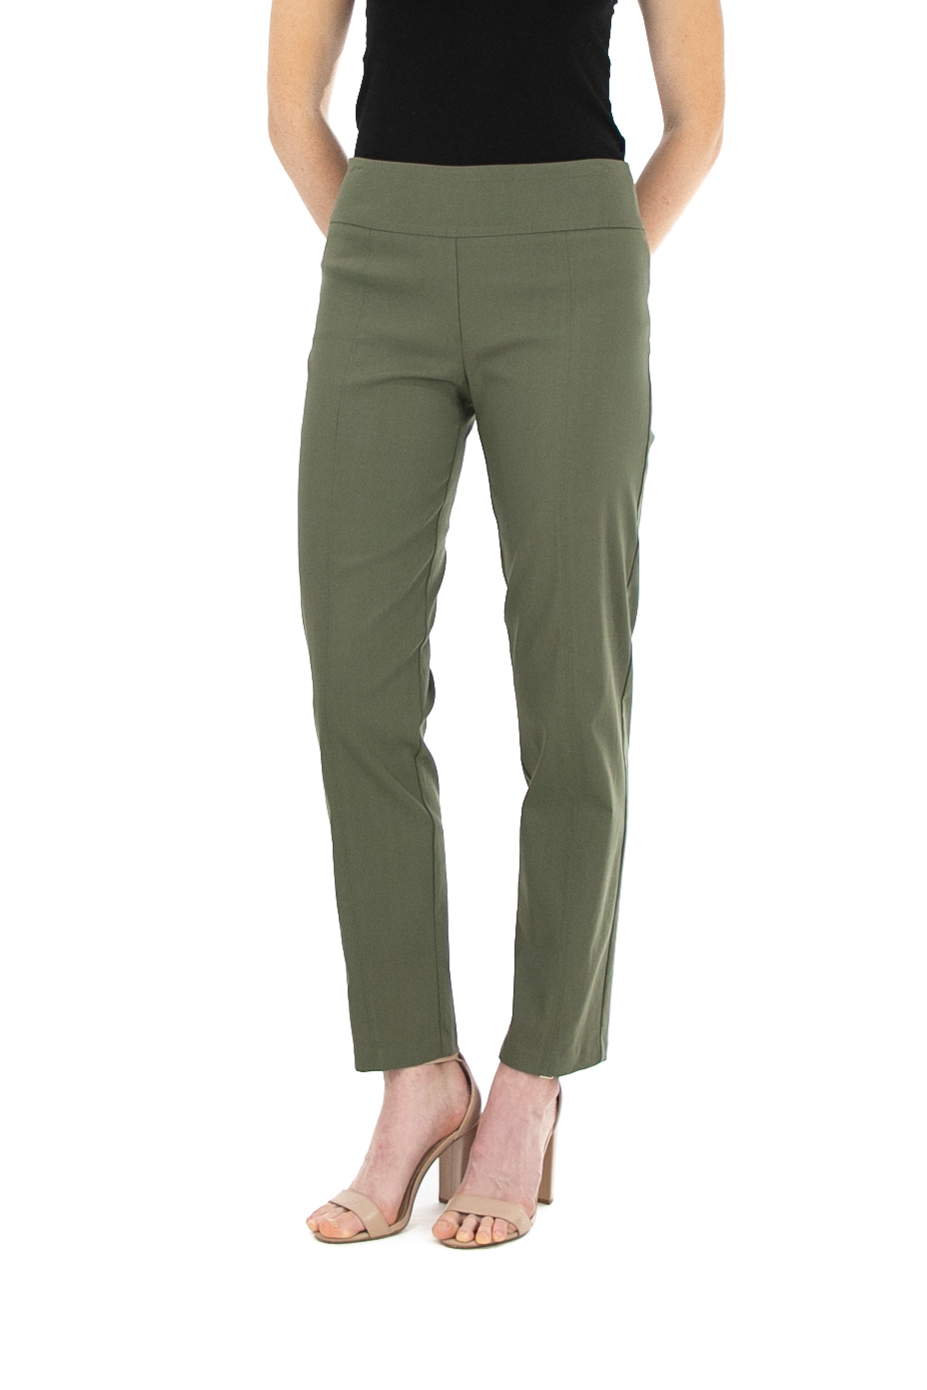 Pull On Pant With Slimming Details